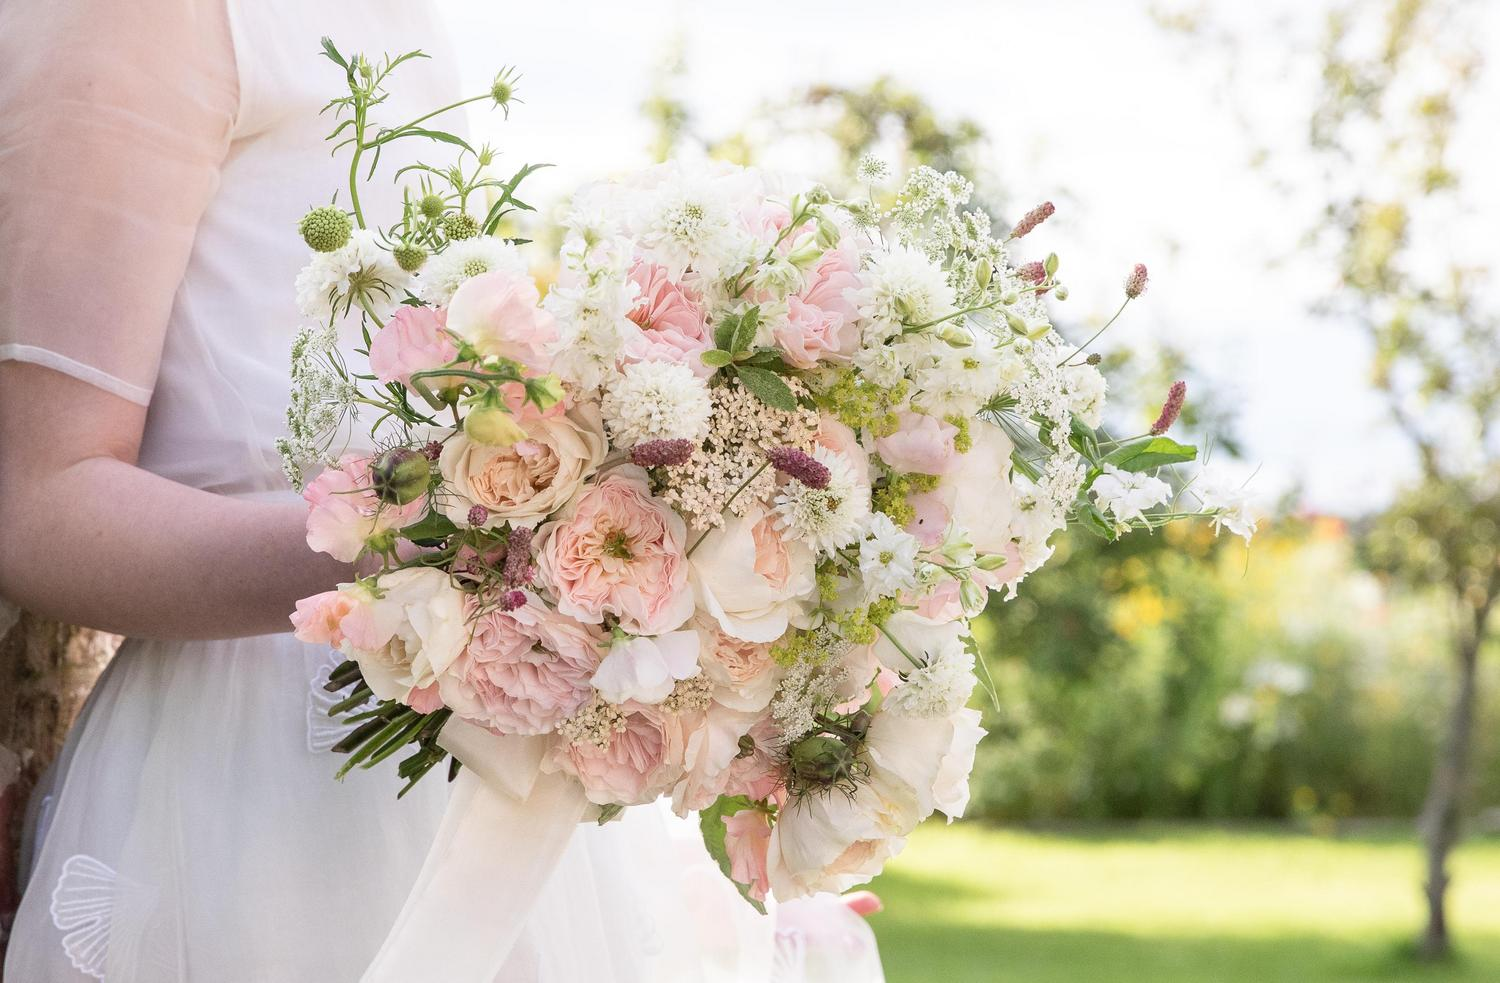 Summer Wedding Bouquet with Blush Roses